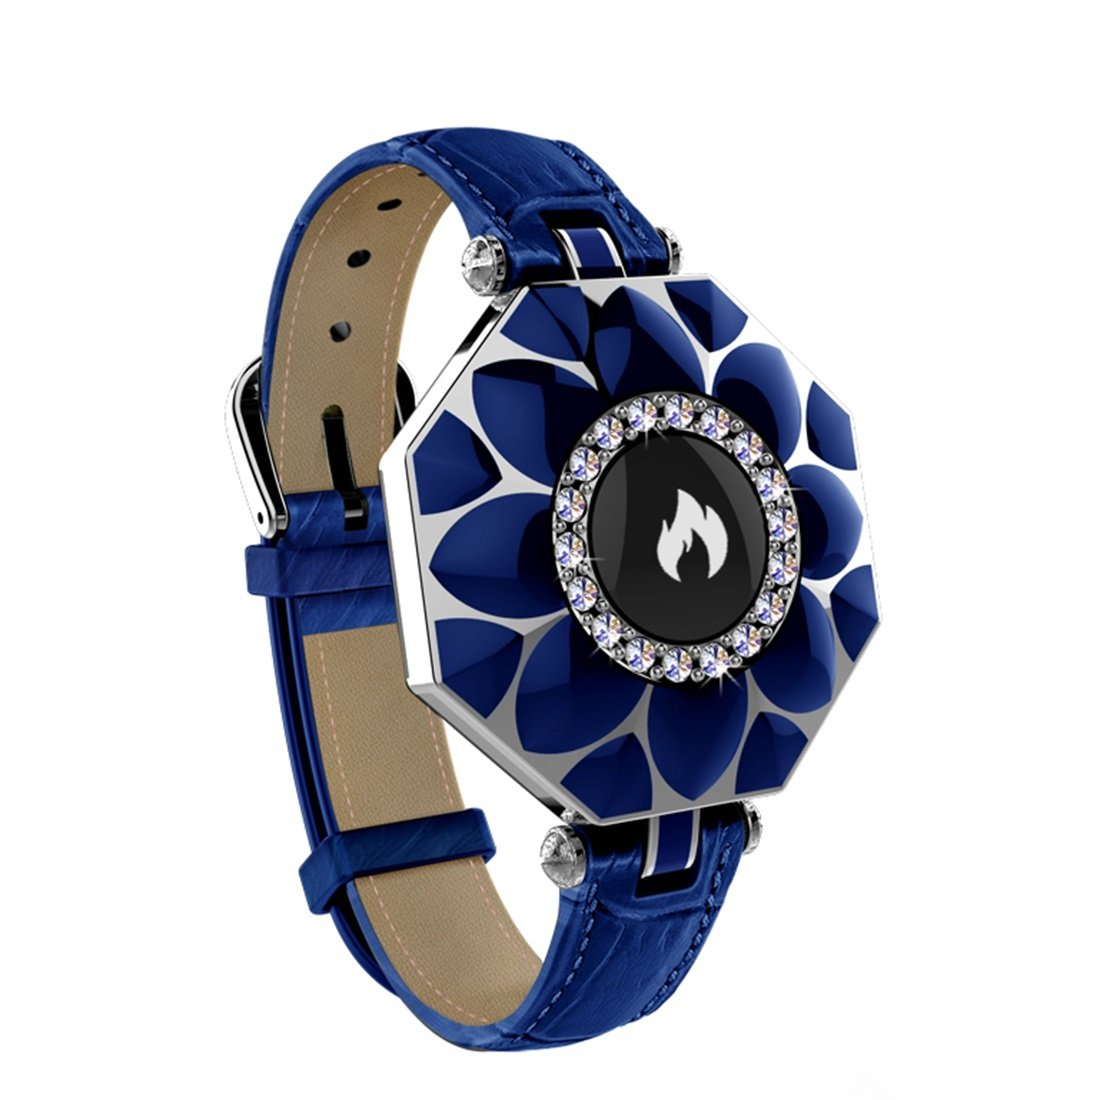 HDWY Smart Watch Fitness Heart Rate Monitor Tracker Smart Bracelet Activity Bluetooth Pedometer Sleep Monitor For Woman (Color : Blue)